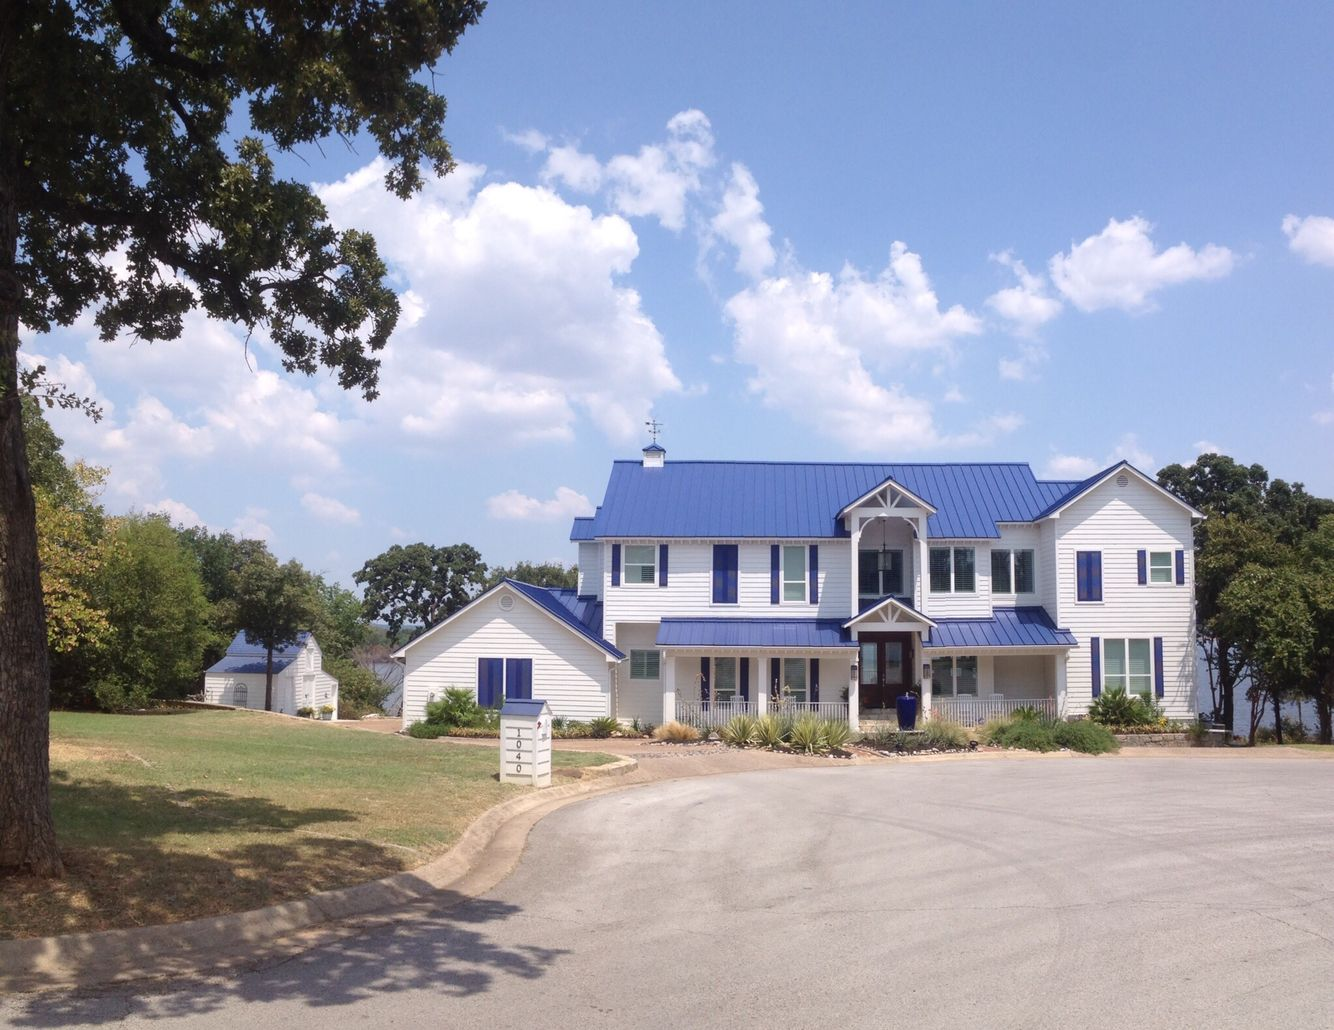 Dream White House Blue Shutters And Blue Tin Roof House Paint Exterior Tin Roof House Shutters Exterior